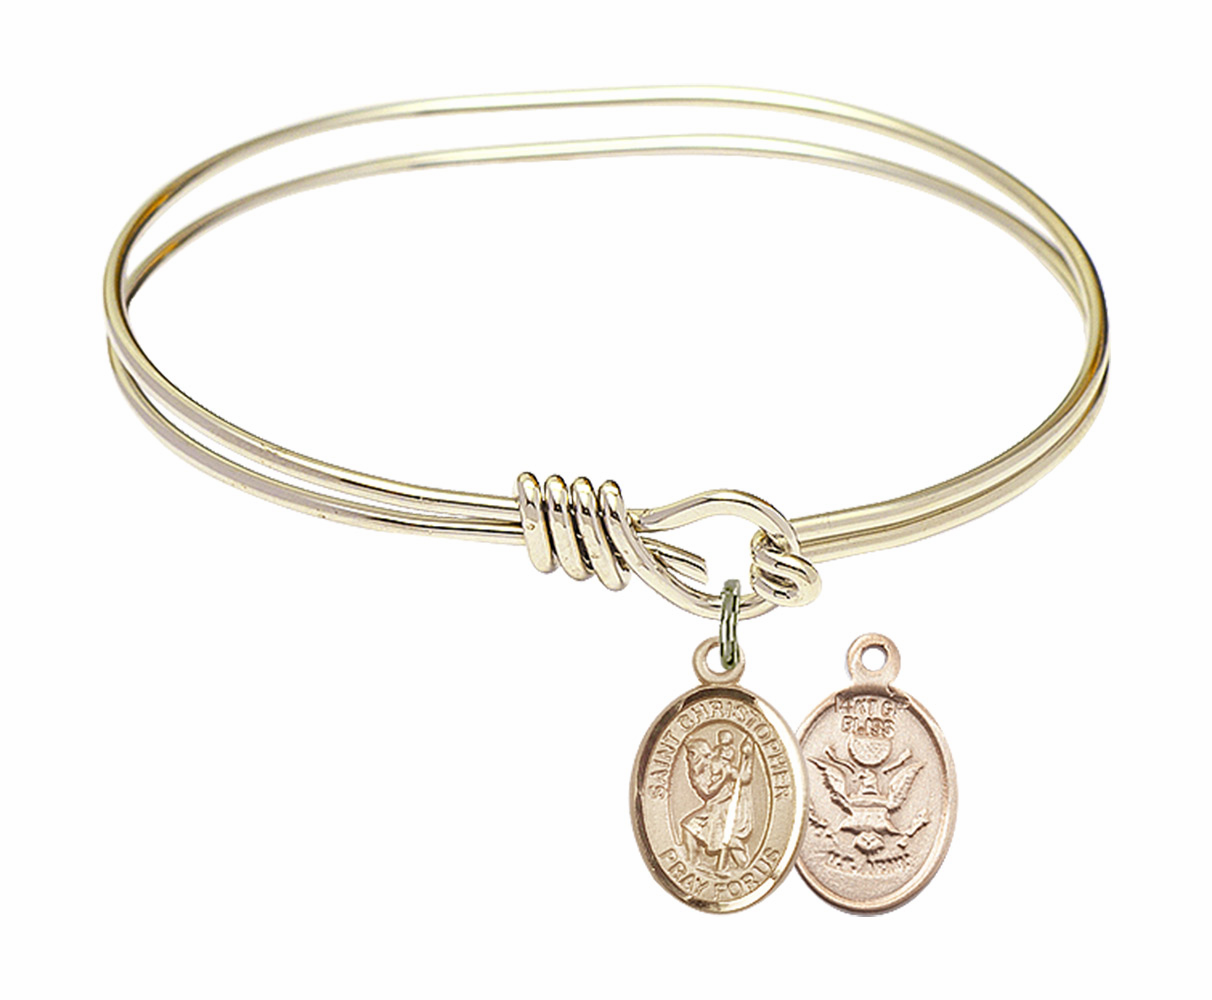 Twisted Gold-filled St Christopher Army Bangle Charm Bracelet by Bliss